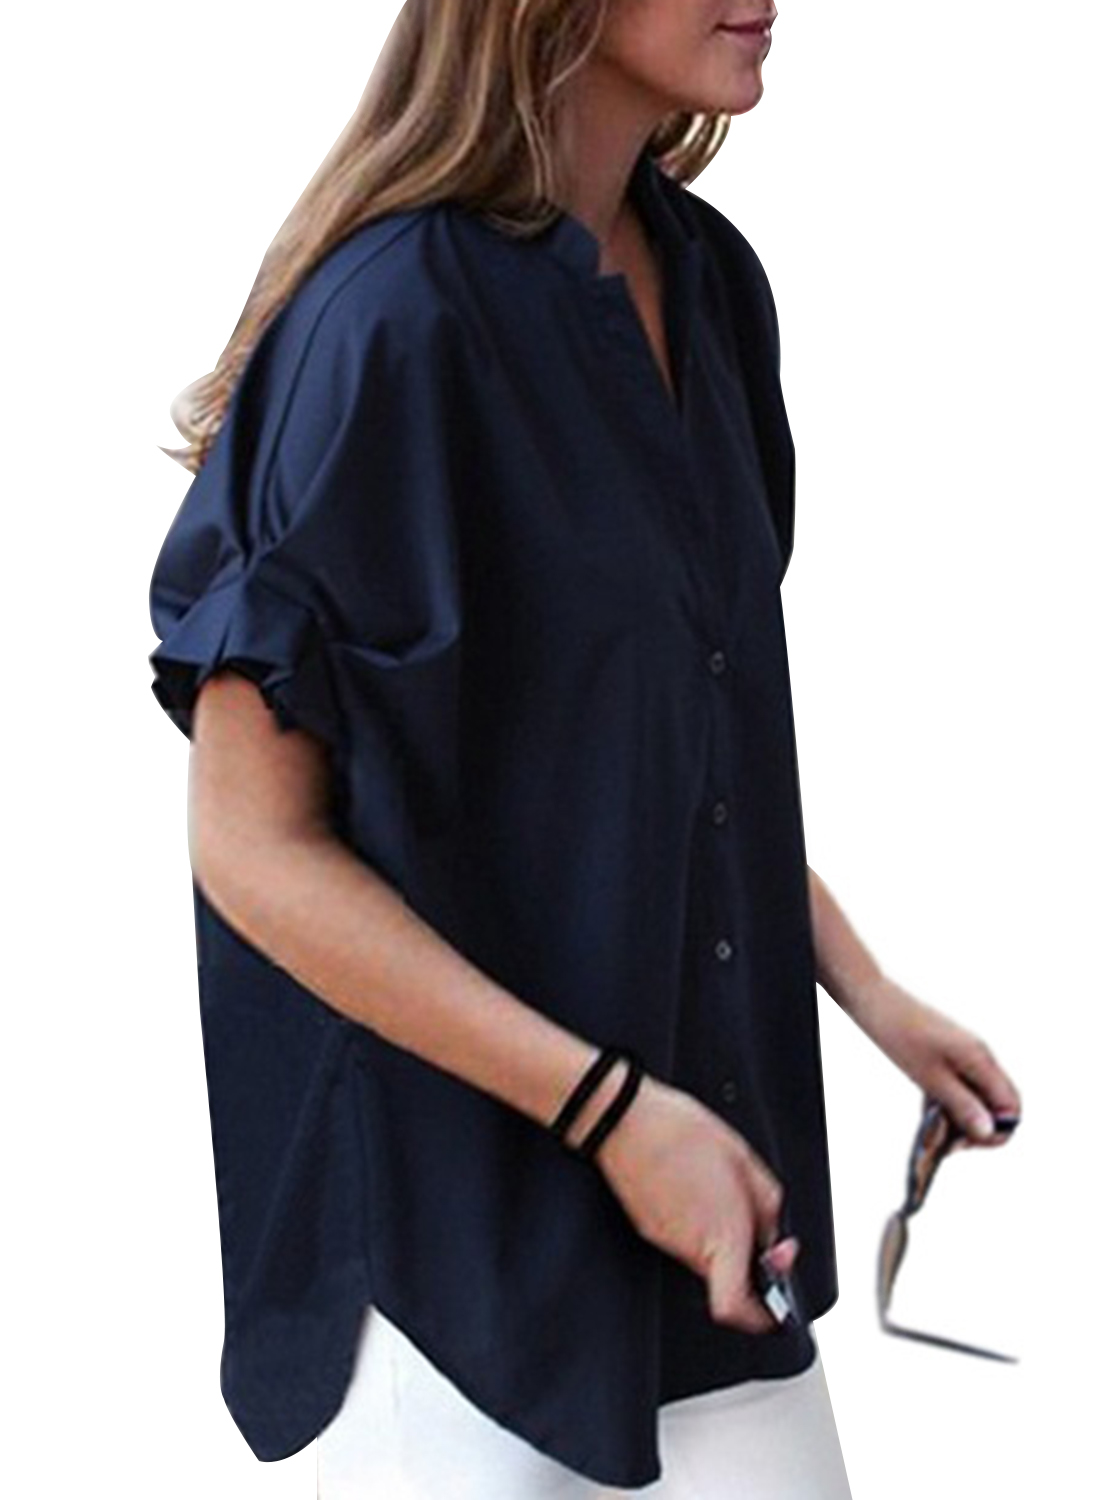 c85ec4a0b Fashion Casual Solid Short Sleeve Lace-up V Neck Button Down Shirt  STYLESIMO.com. Loading zoom